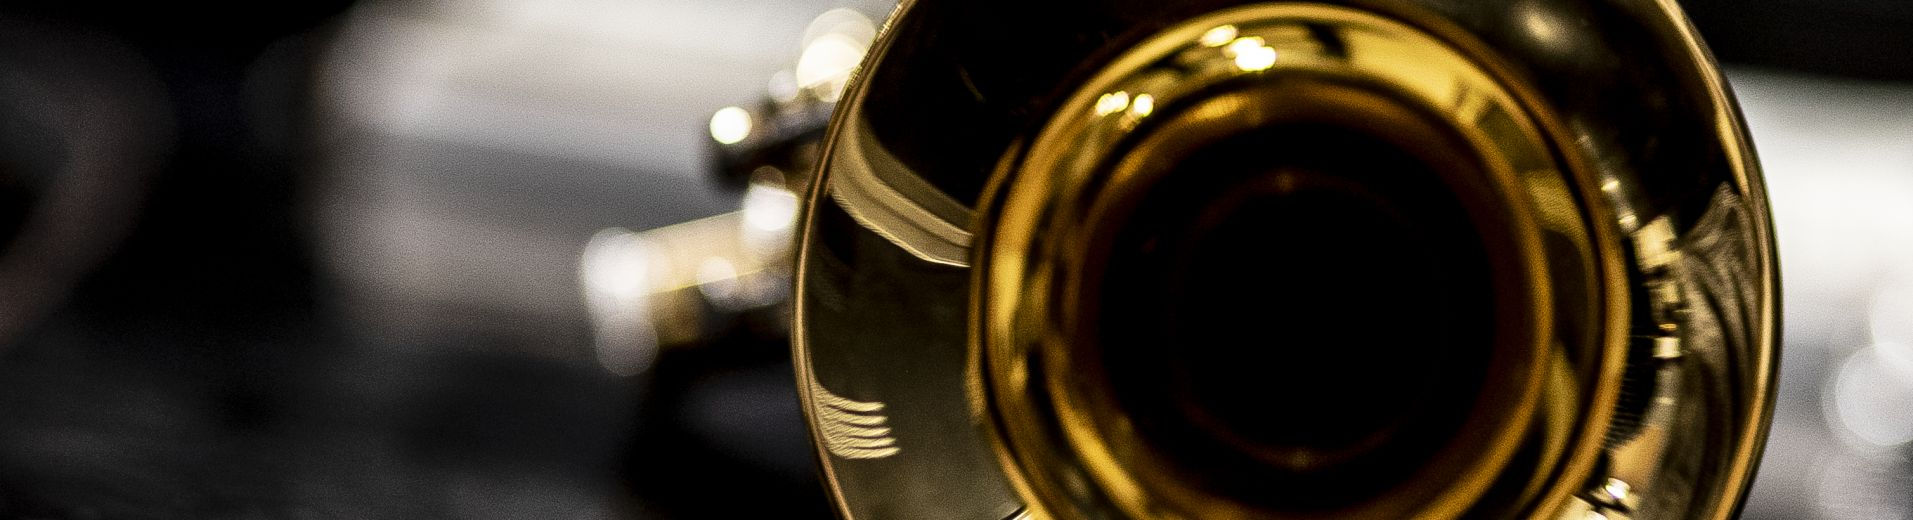 Close up image of trumpet bell